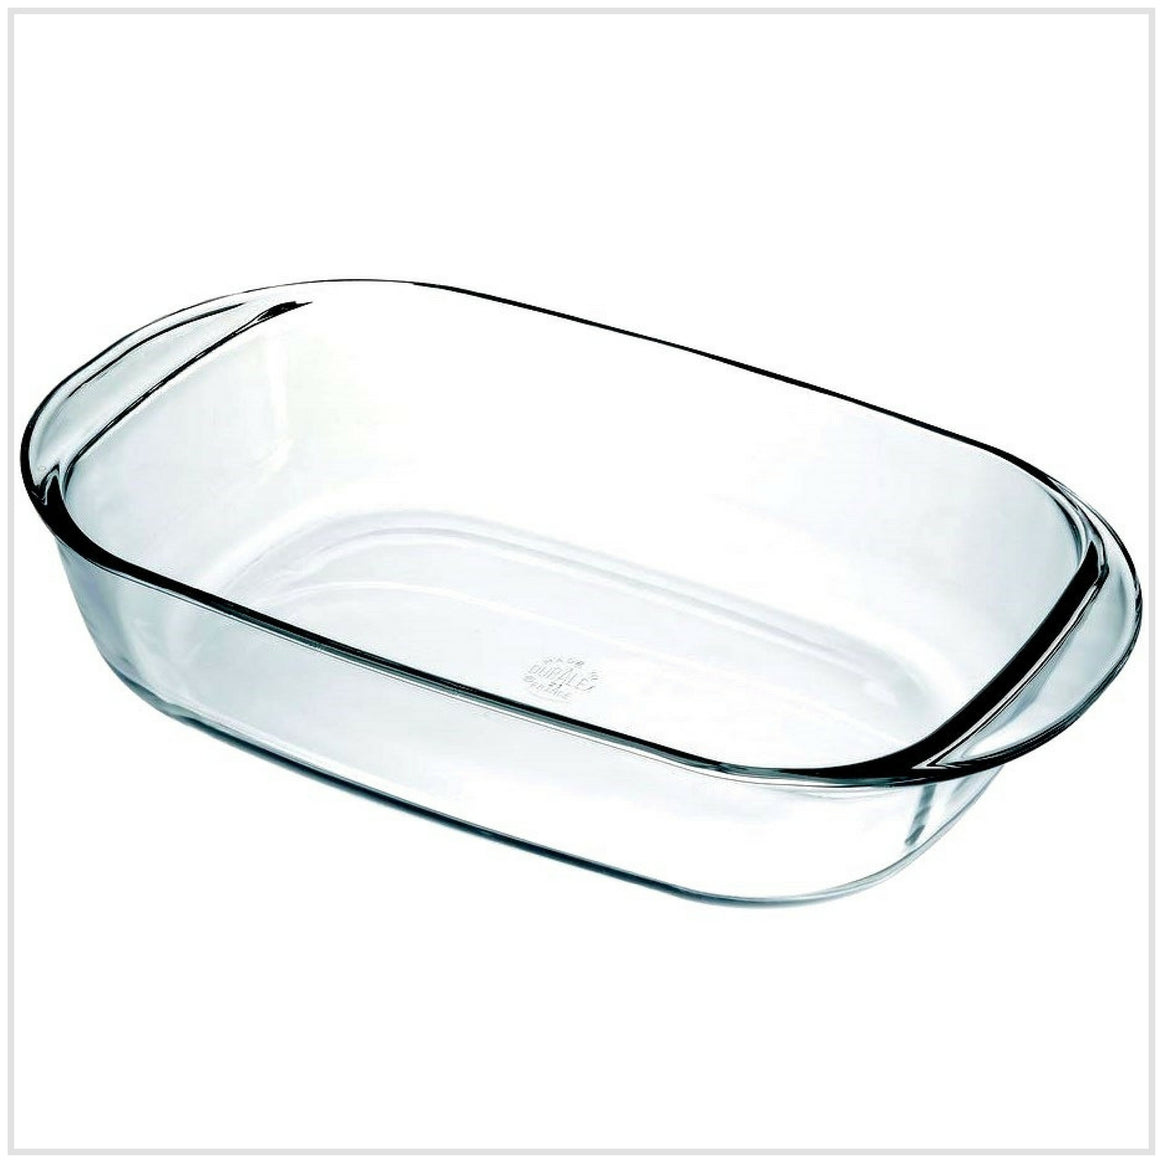 Duralex Oven Chef Glass Roasting Dish 41x25cm